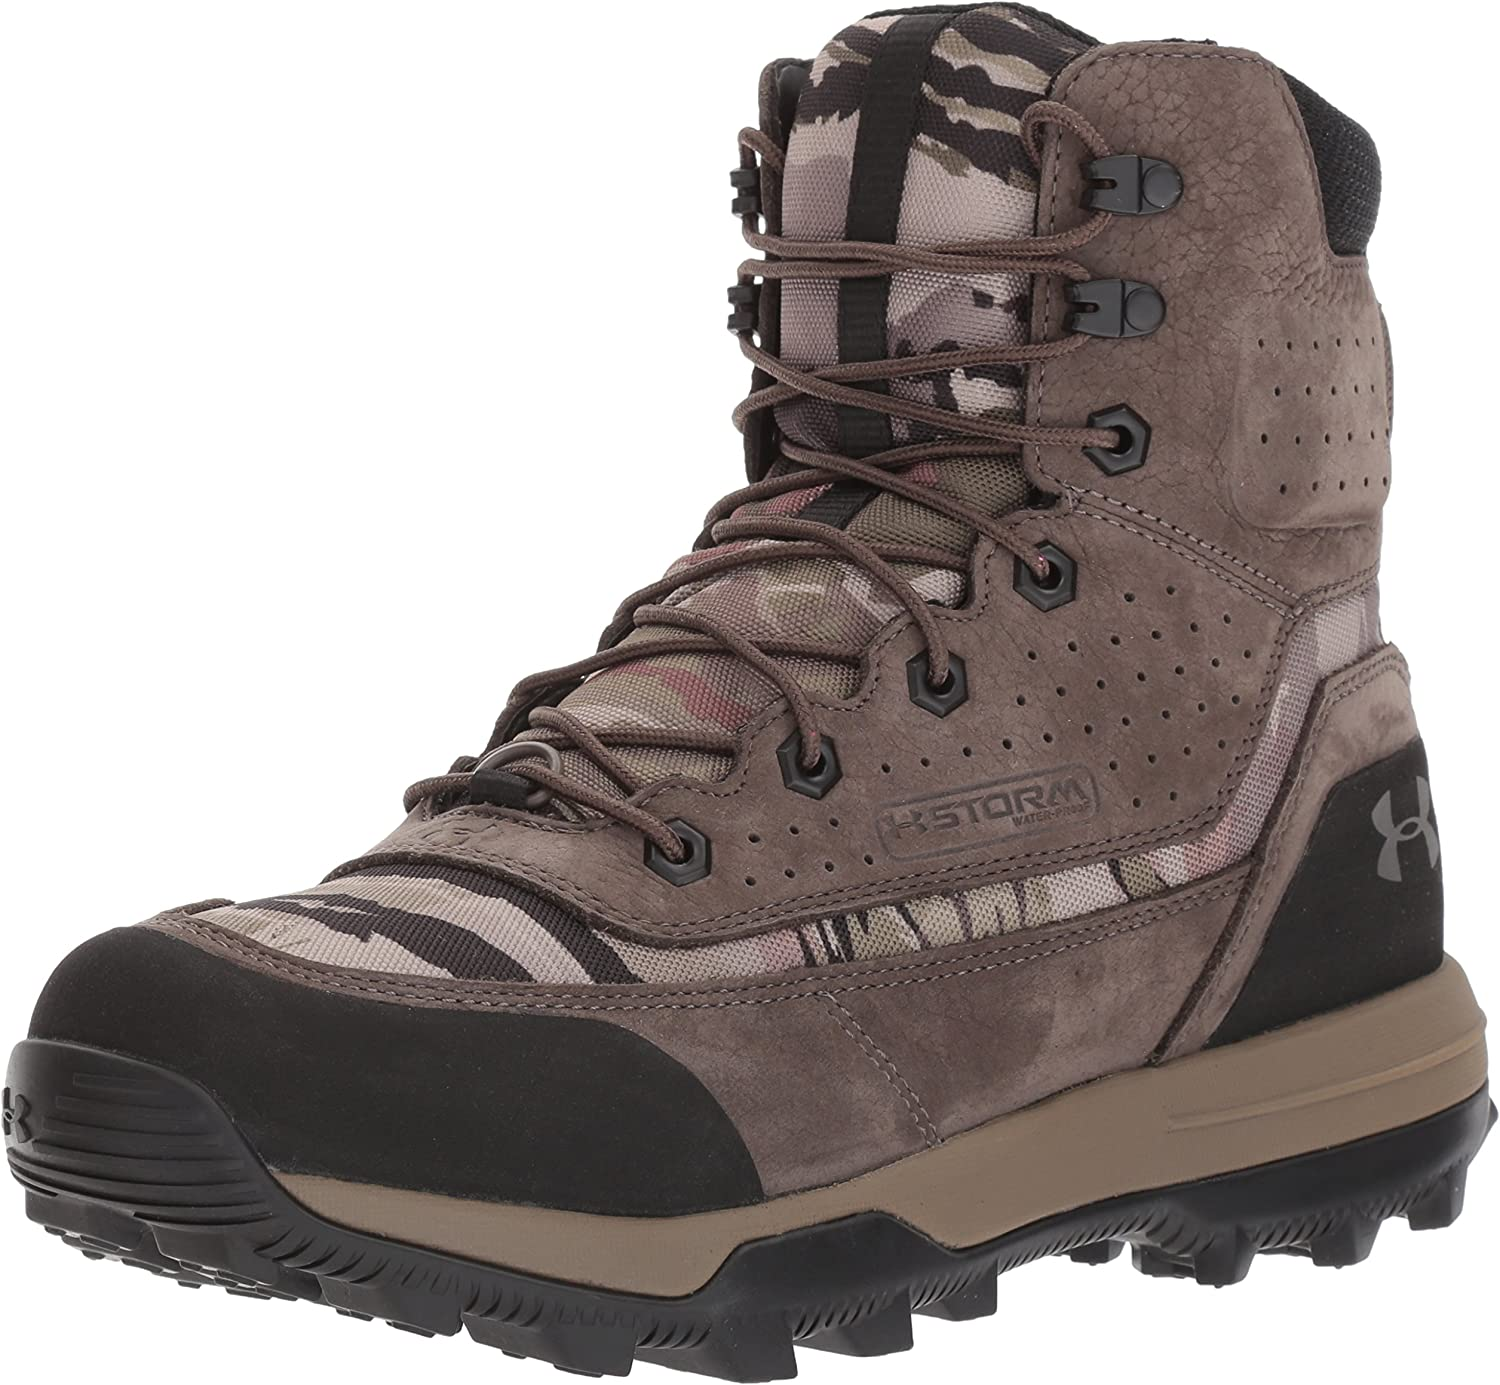 11.5 M UNDER ARMOUR SF BOZEMAN 2.0 men/'s Waterproof Hunting Hiking Work Boots